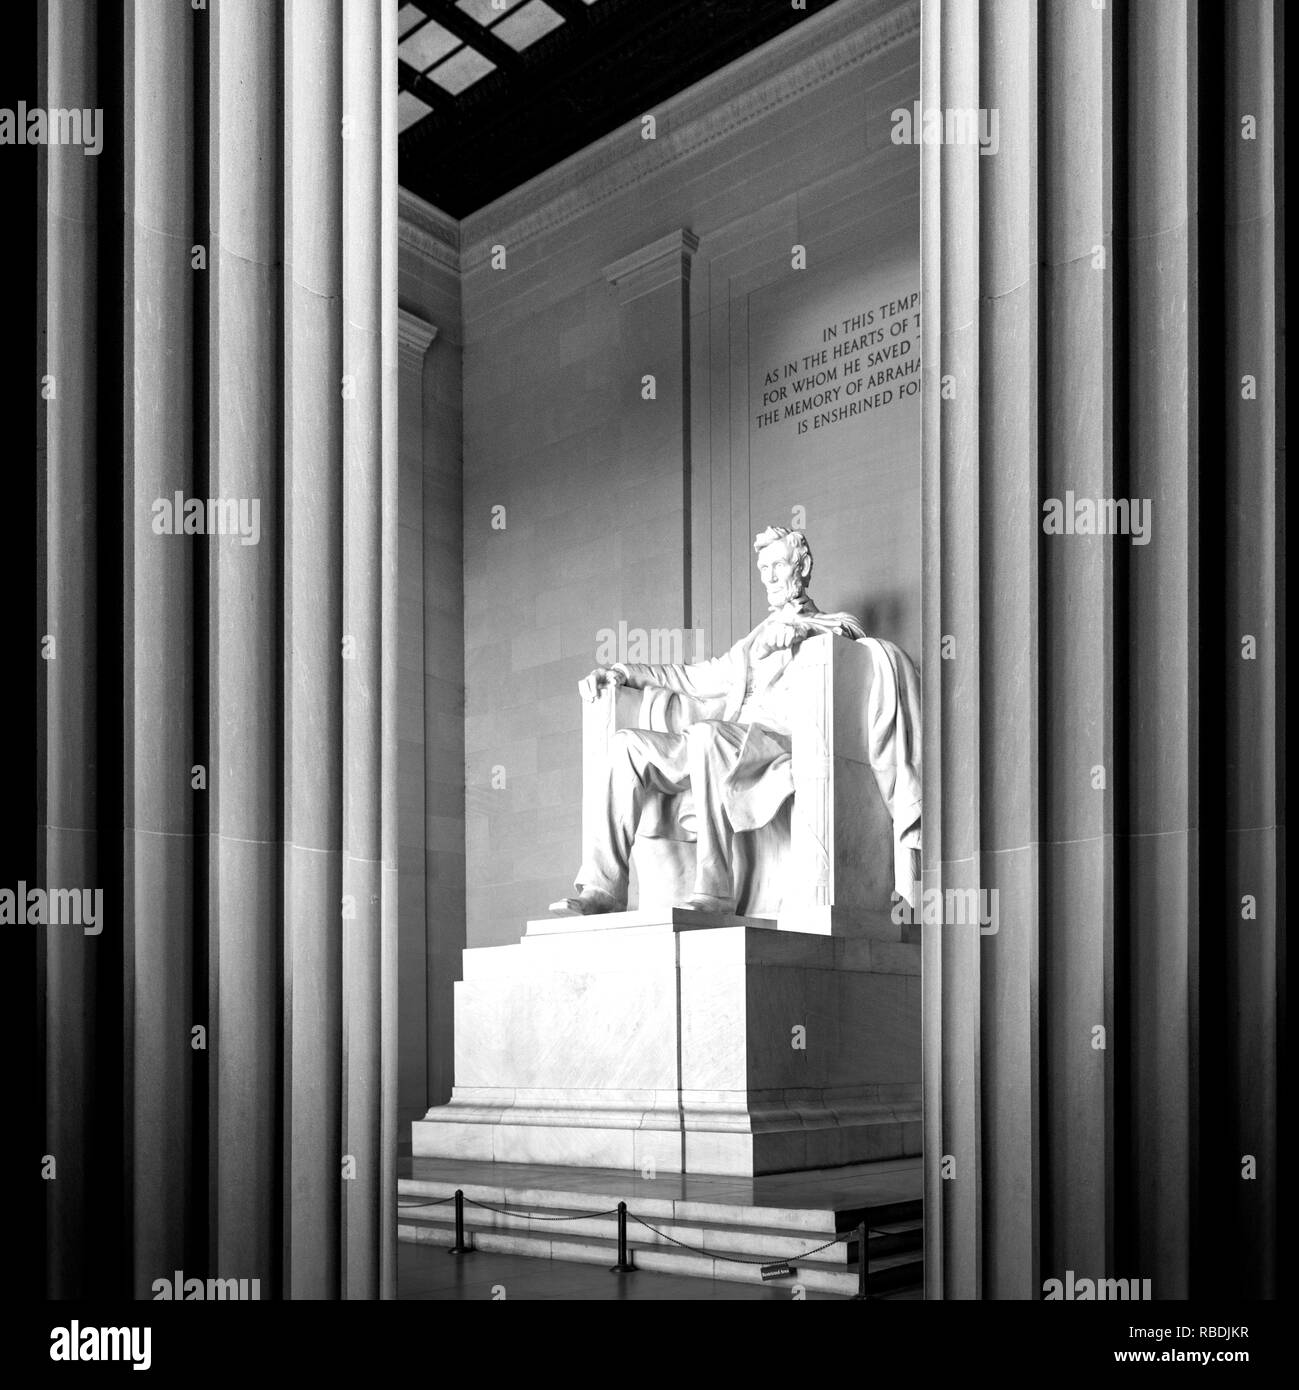 This image of Abraham Lincoln's memorial reflects his strength, stability and good judgment in his leadership of the nation during one of its most par Stock Photo